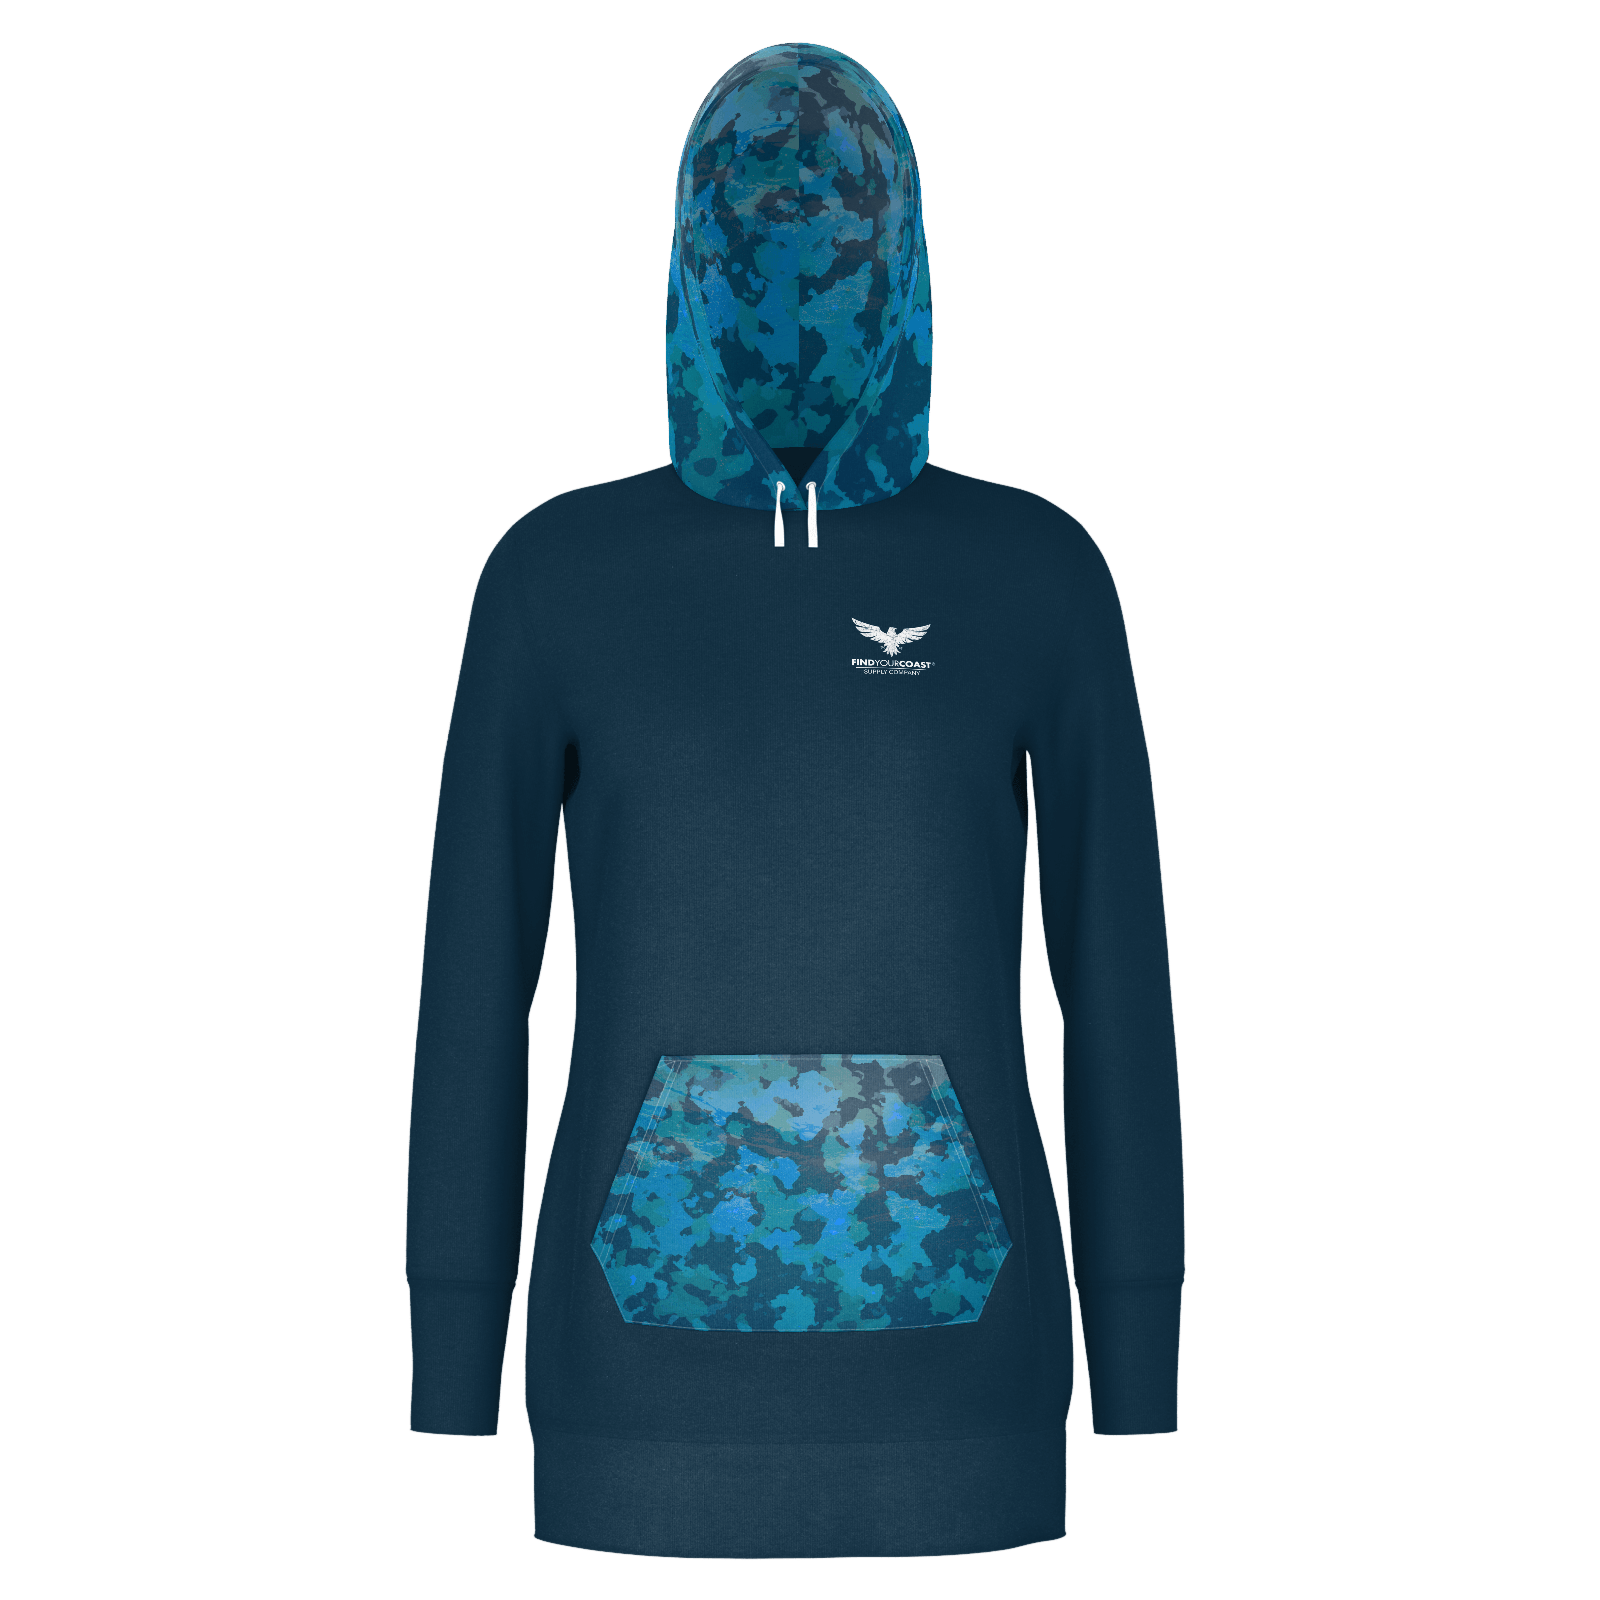 Women's Supply Co. Ocean Camo Sustainable Pacific Coast Pullover Hoodie Dress - Find Your Coast Supply Co.